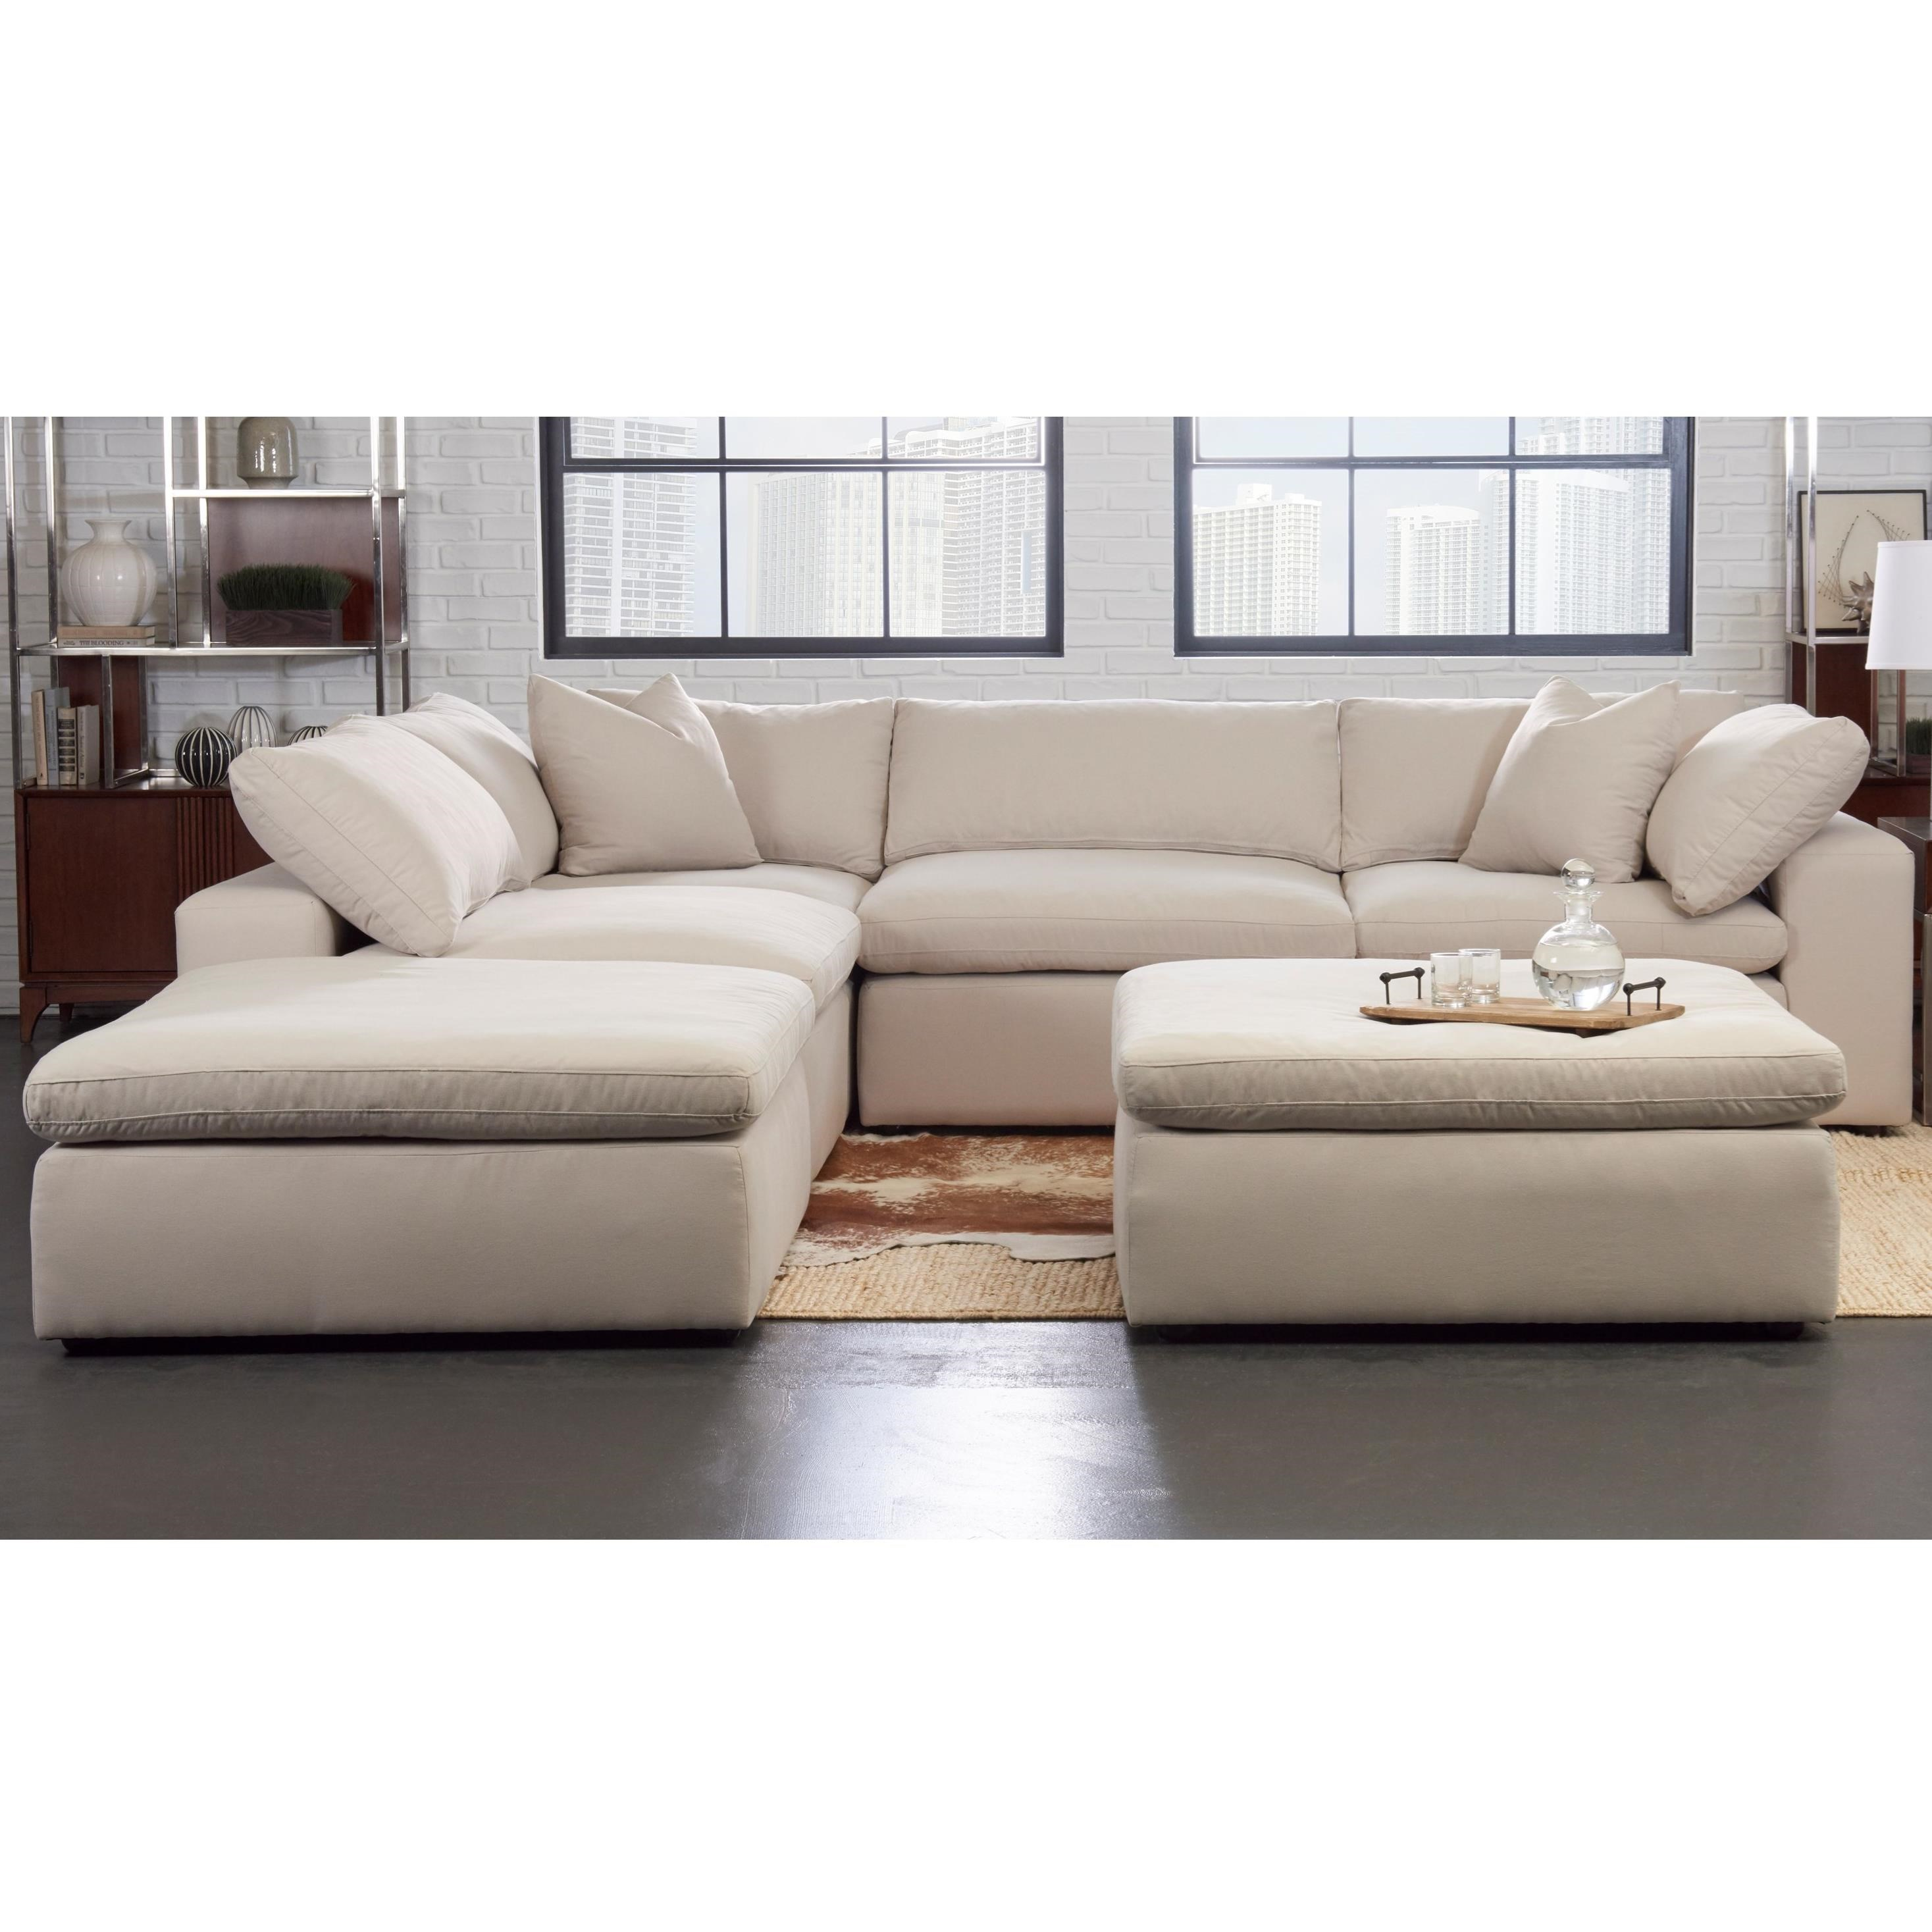 Klaussner Monterey Contemporary 5 Pc Modular Sectional